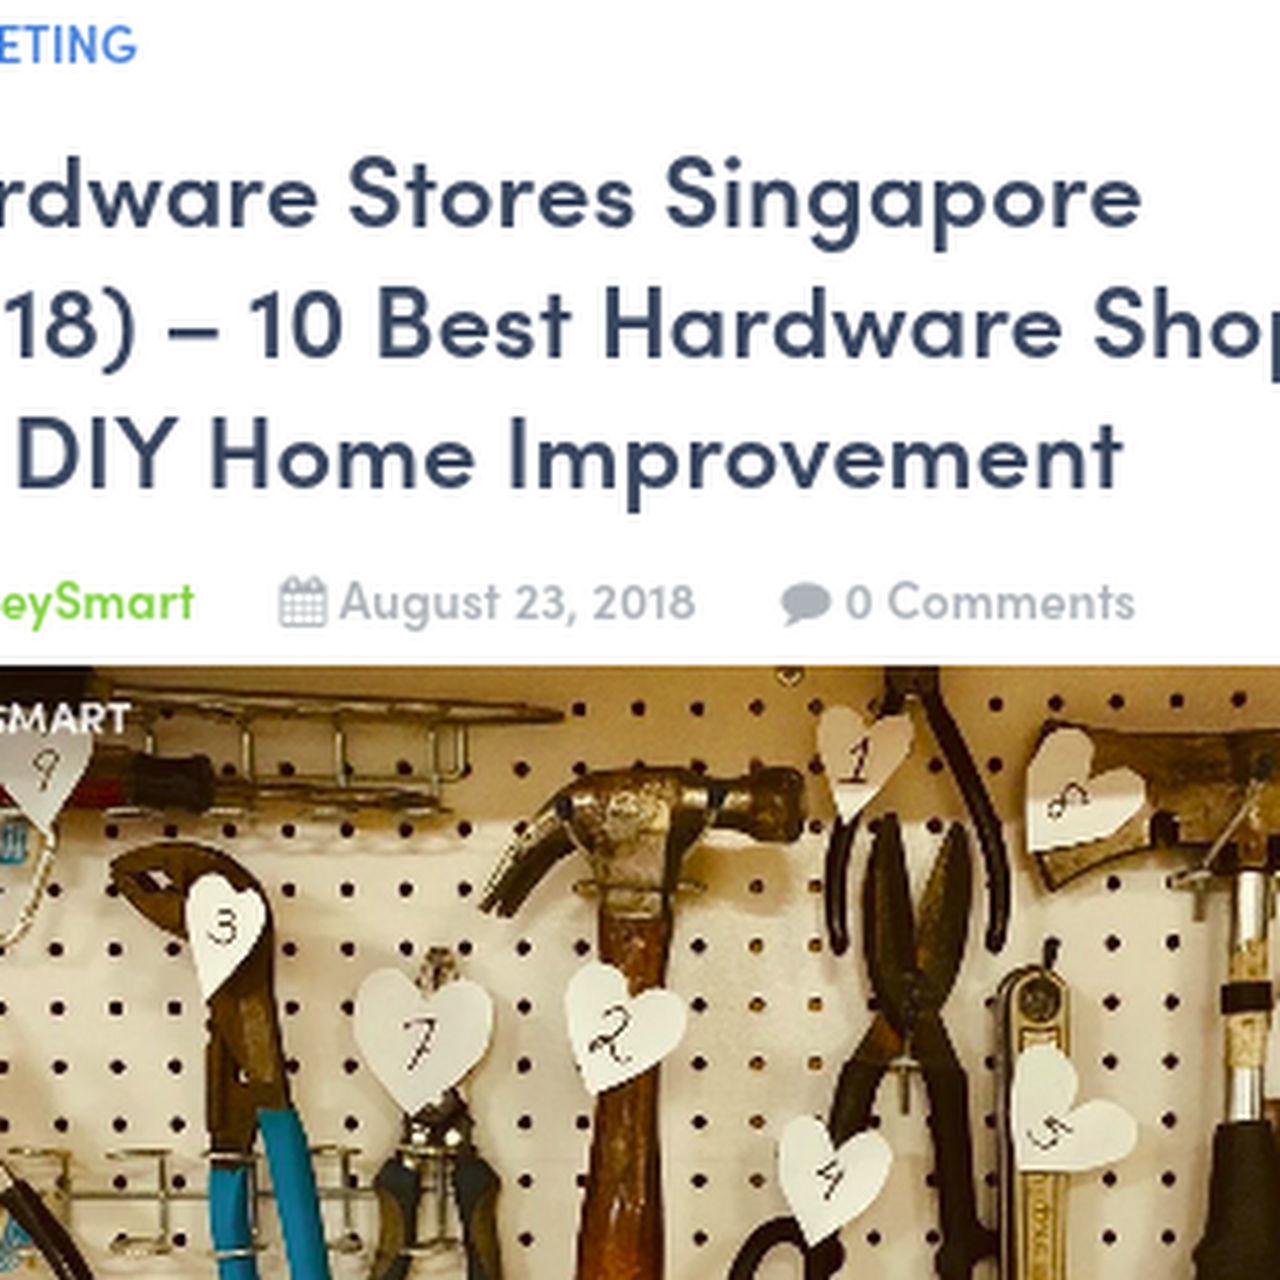 David Hardware and Electrical - Hardware Store